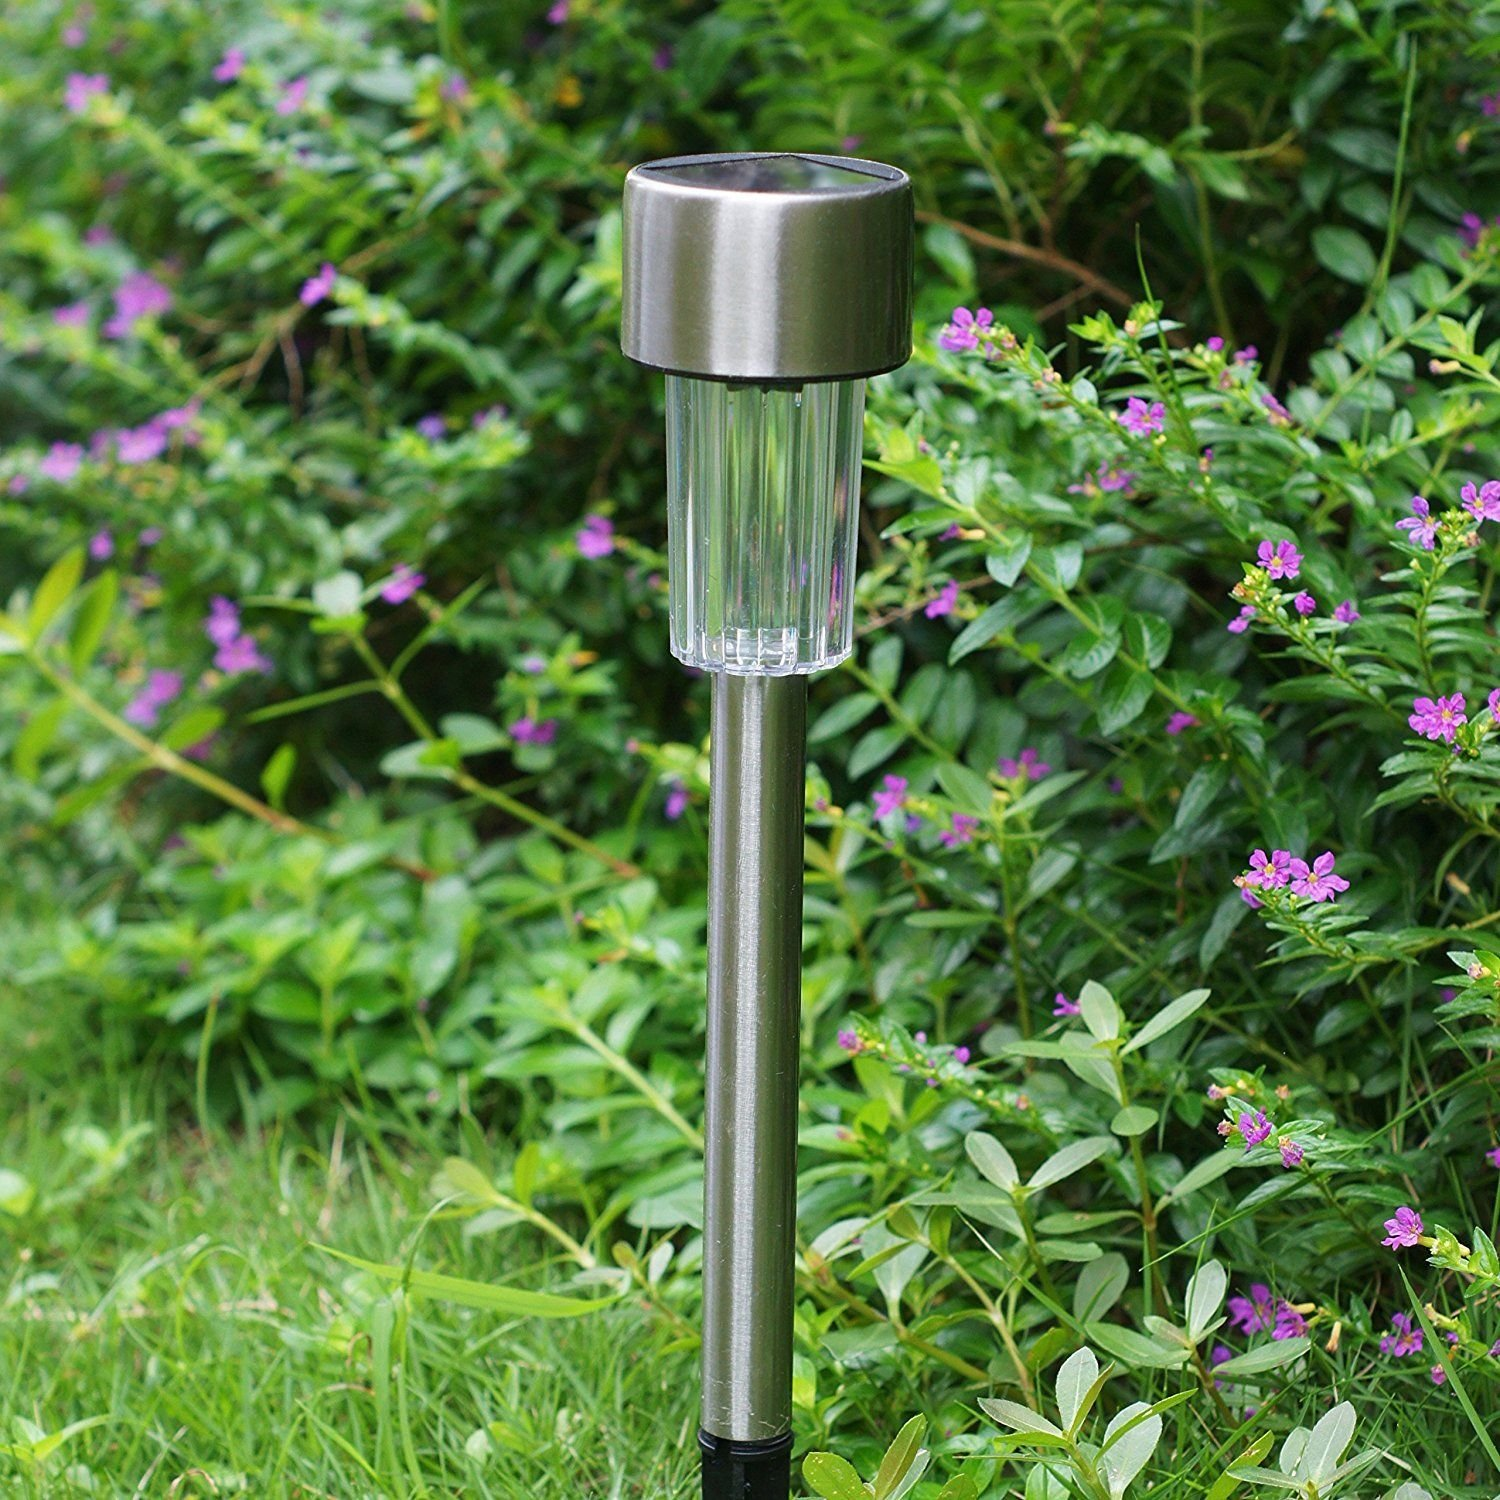 Solar Path Lights Outdoor Stainless Steel - 12 Pack Bright Solar Garden Illumination for Pathway Driveway Lawn Landscape Patio Yard (Silver) by kinna (Image #7)